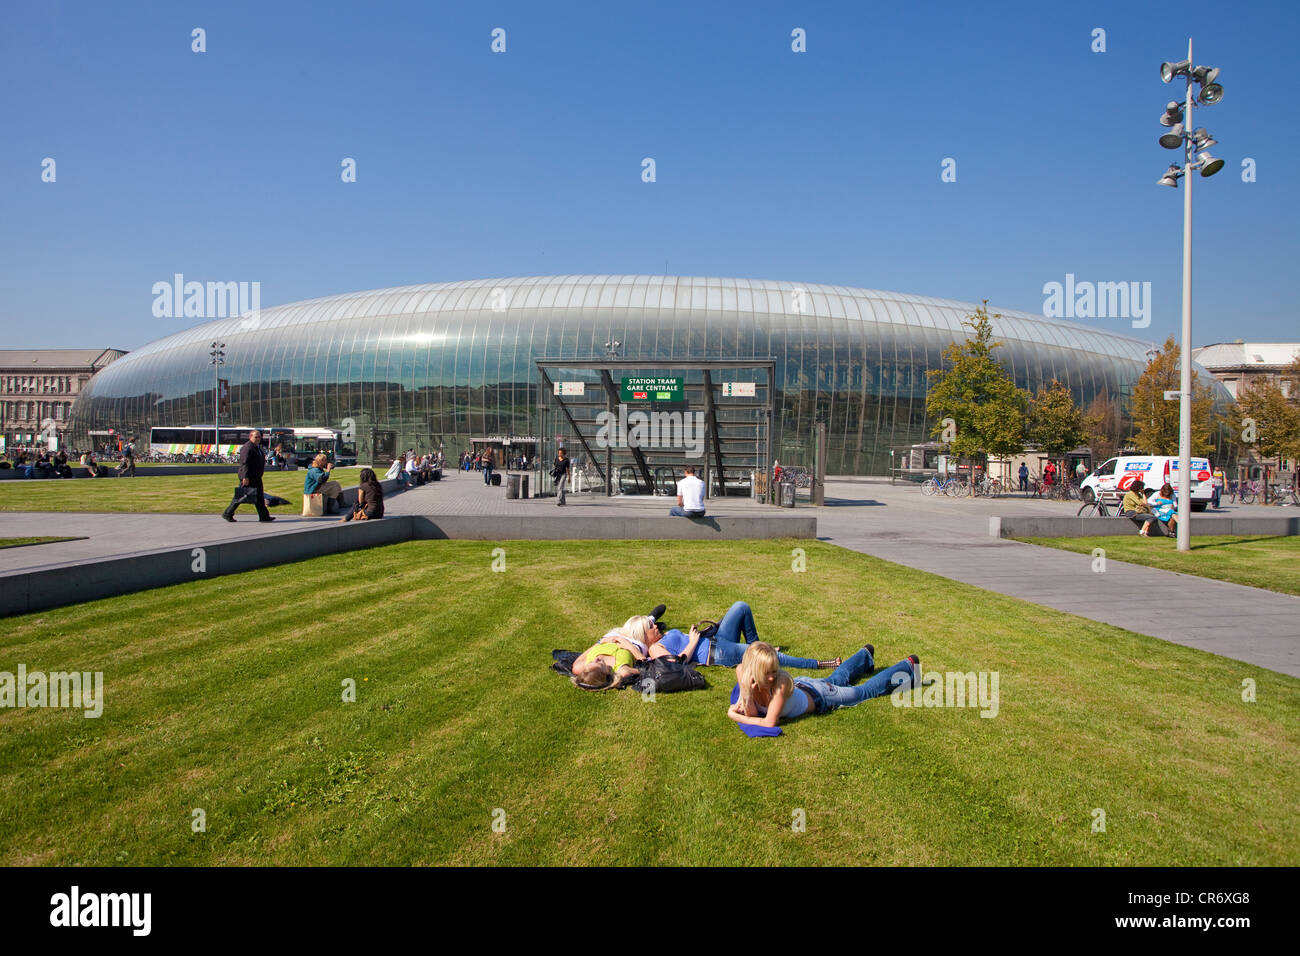 Young people lying on the lawn in front of the main train station in Strasbourg, a modern glass dome is covering - Stock Image